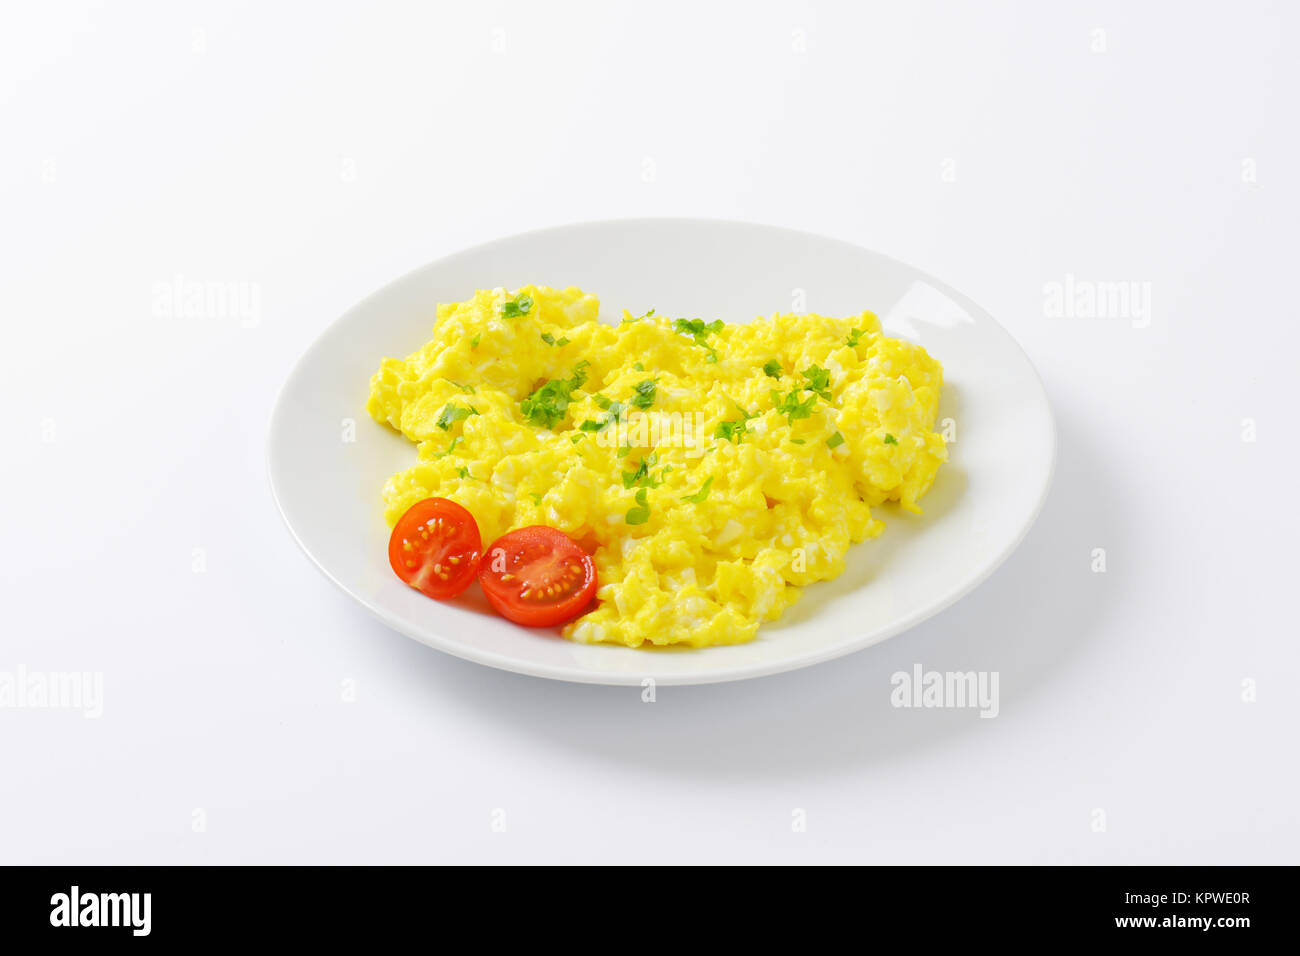 plate of scrambled eggs - Stock Image